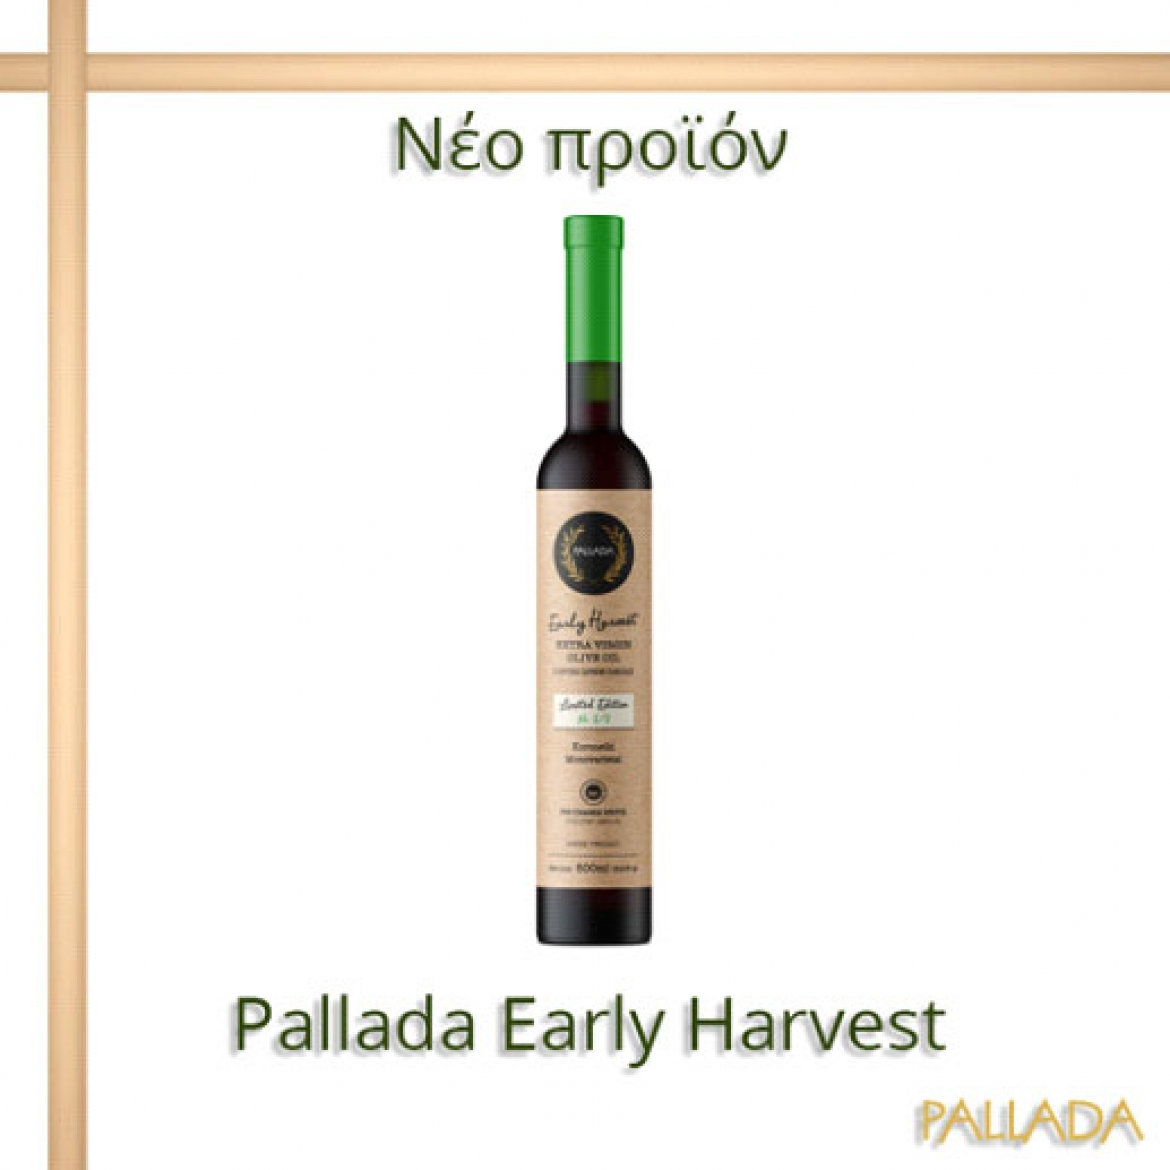 New product Pallada Early Harvest